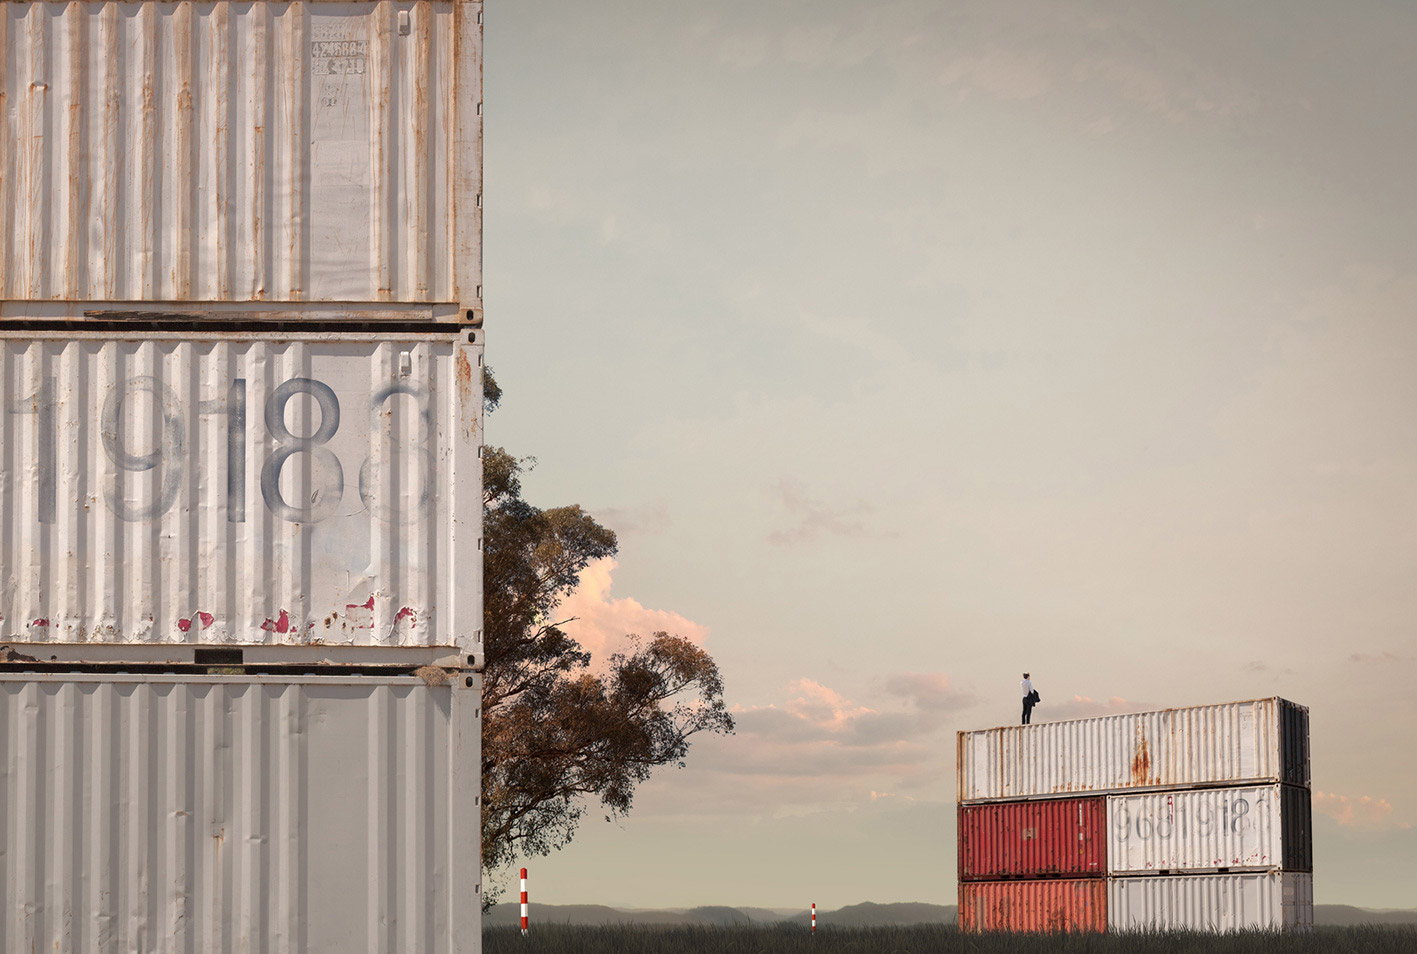 Container Field, 2013  Pigment print on archival rag   159.5 x 115cm /  Edition of 5 +2AP (Sold Out)   Represented by   Otomys Arthouse